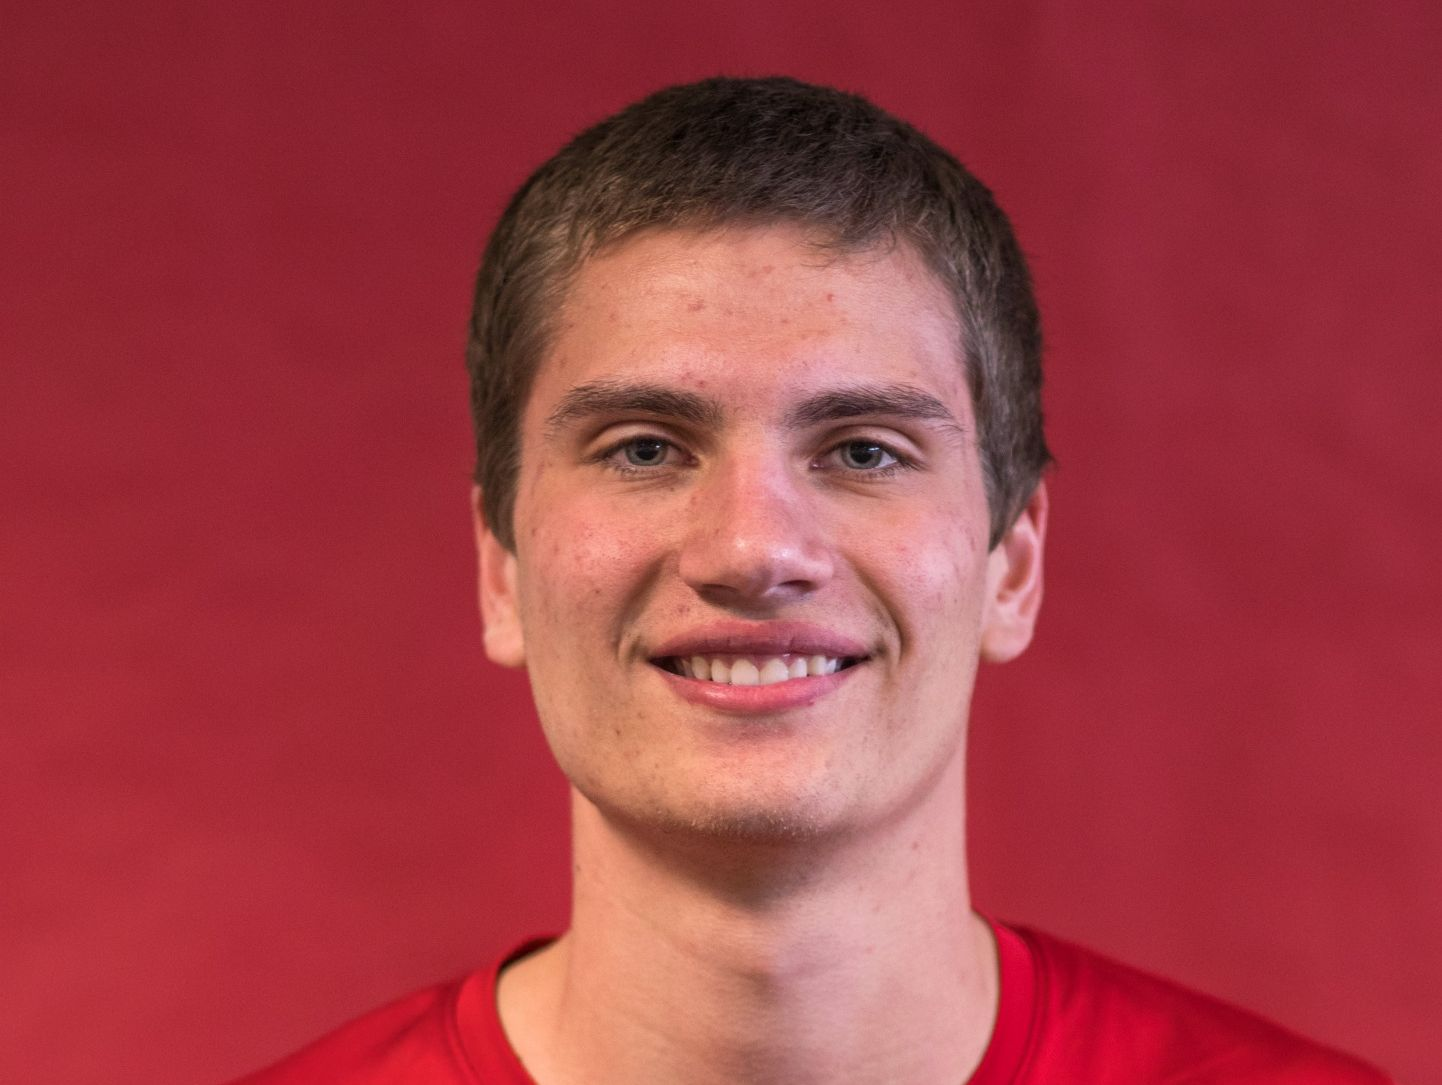 Bryce Andrashie, from Fountain Hills, is the azcentral.com Sports Awards Male Athlete of the Week, presented by La-Z-Boy Furniture Galleries, for Feb. 2-9.